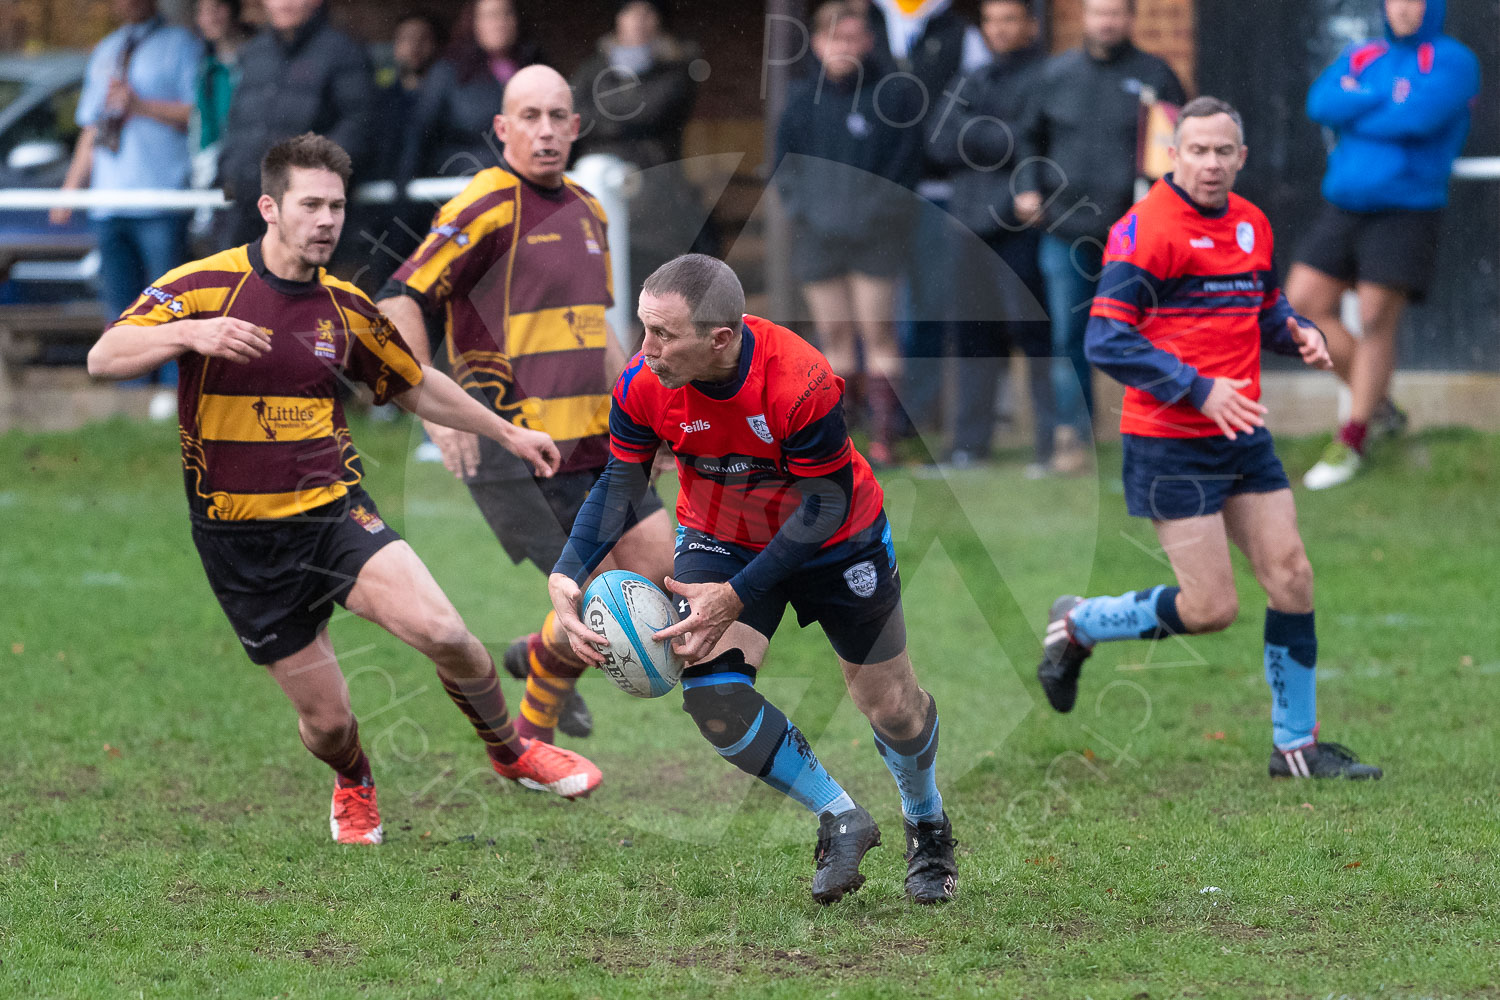 20181027 Amp Extras vs St Neots 2nd XV #2583